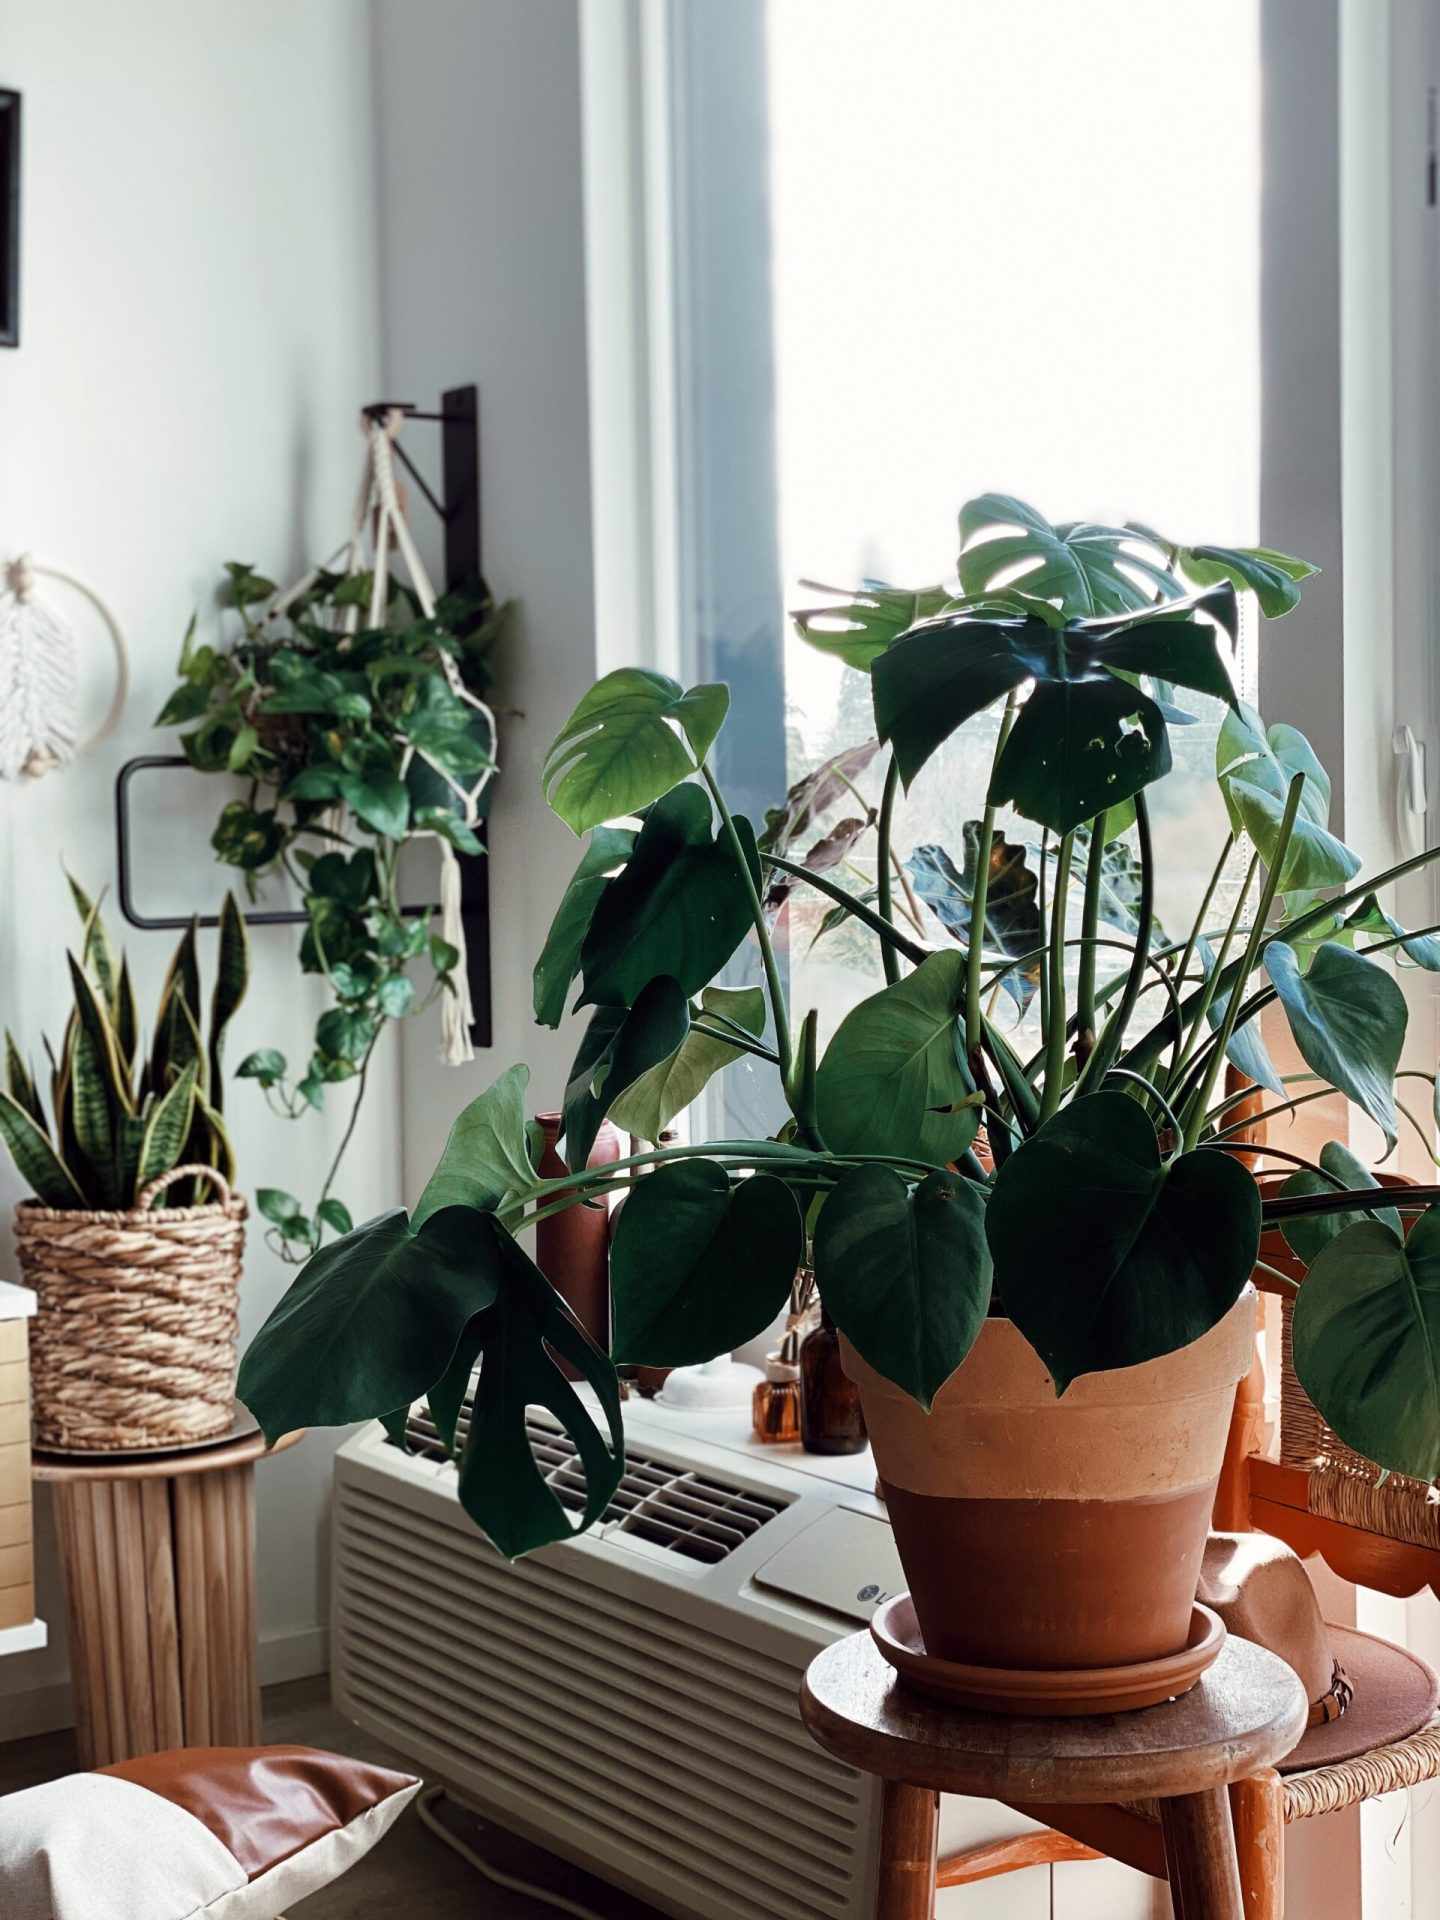 How to care for your pothos plants